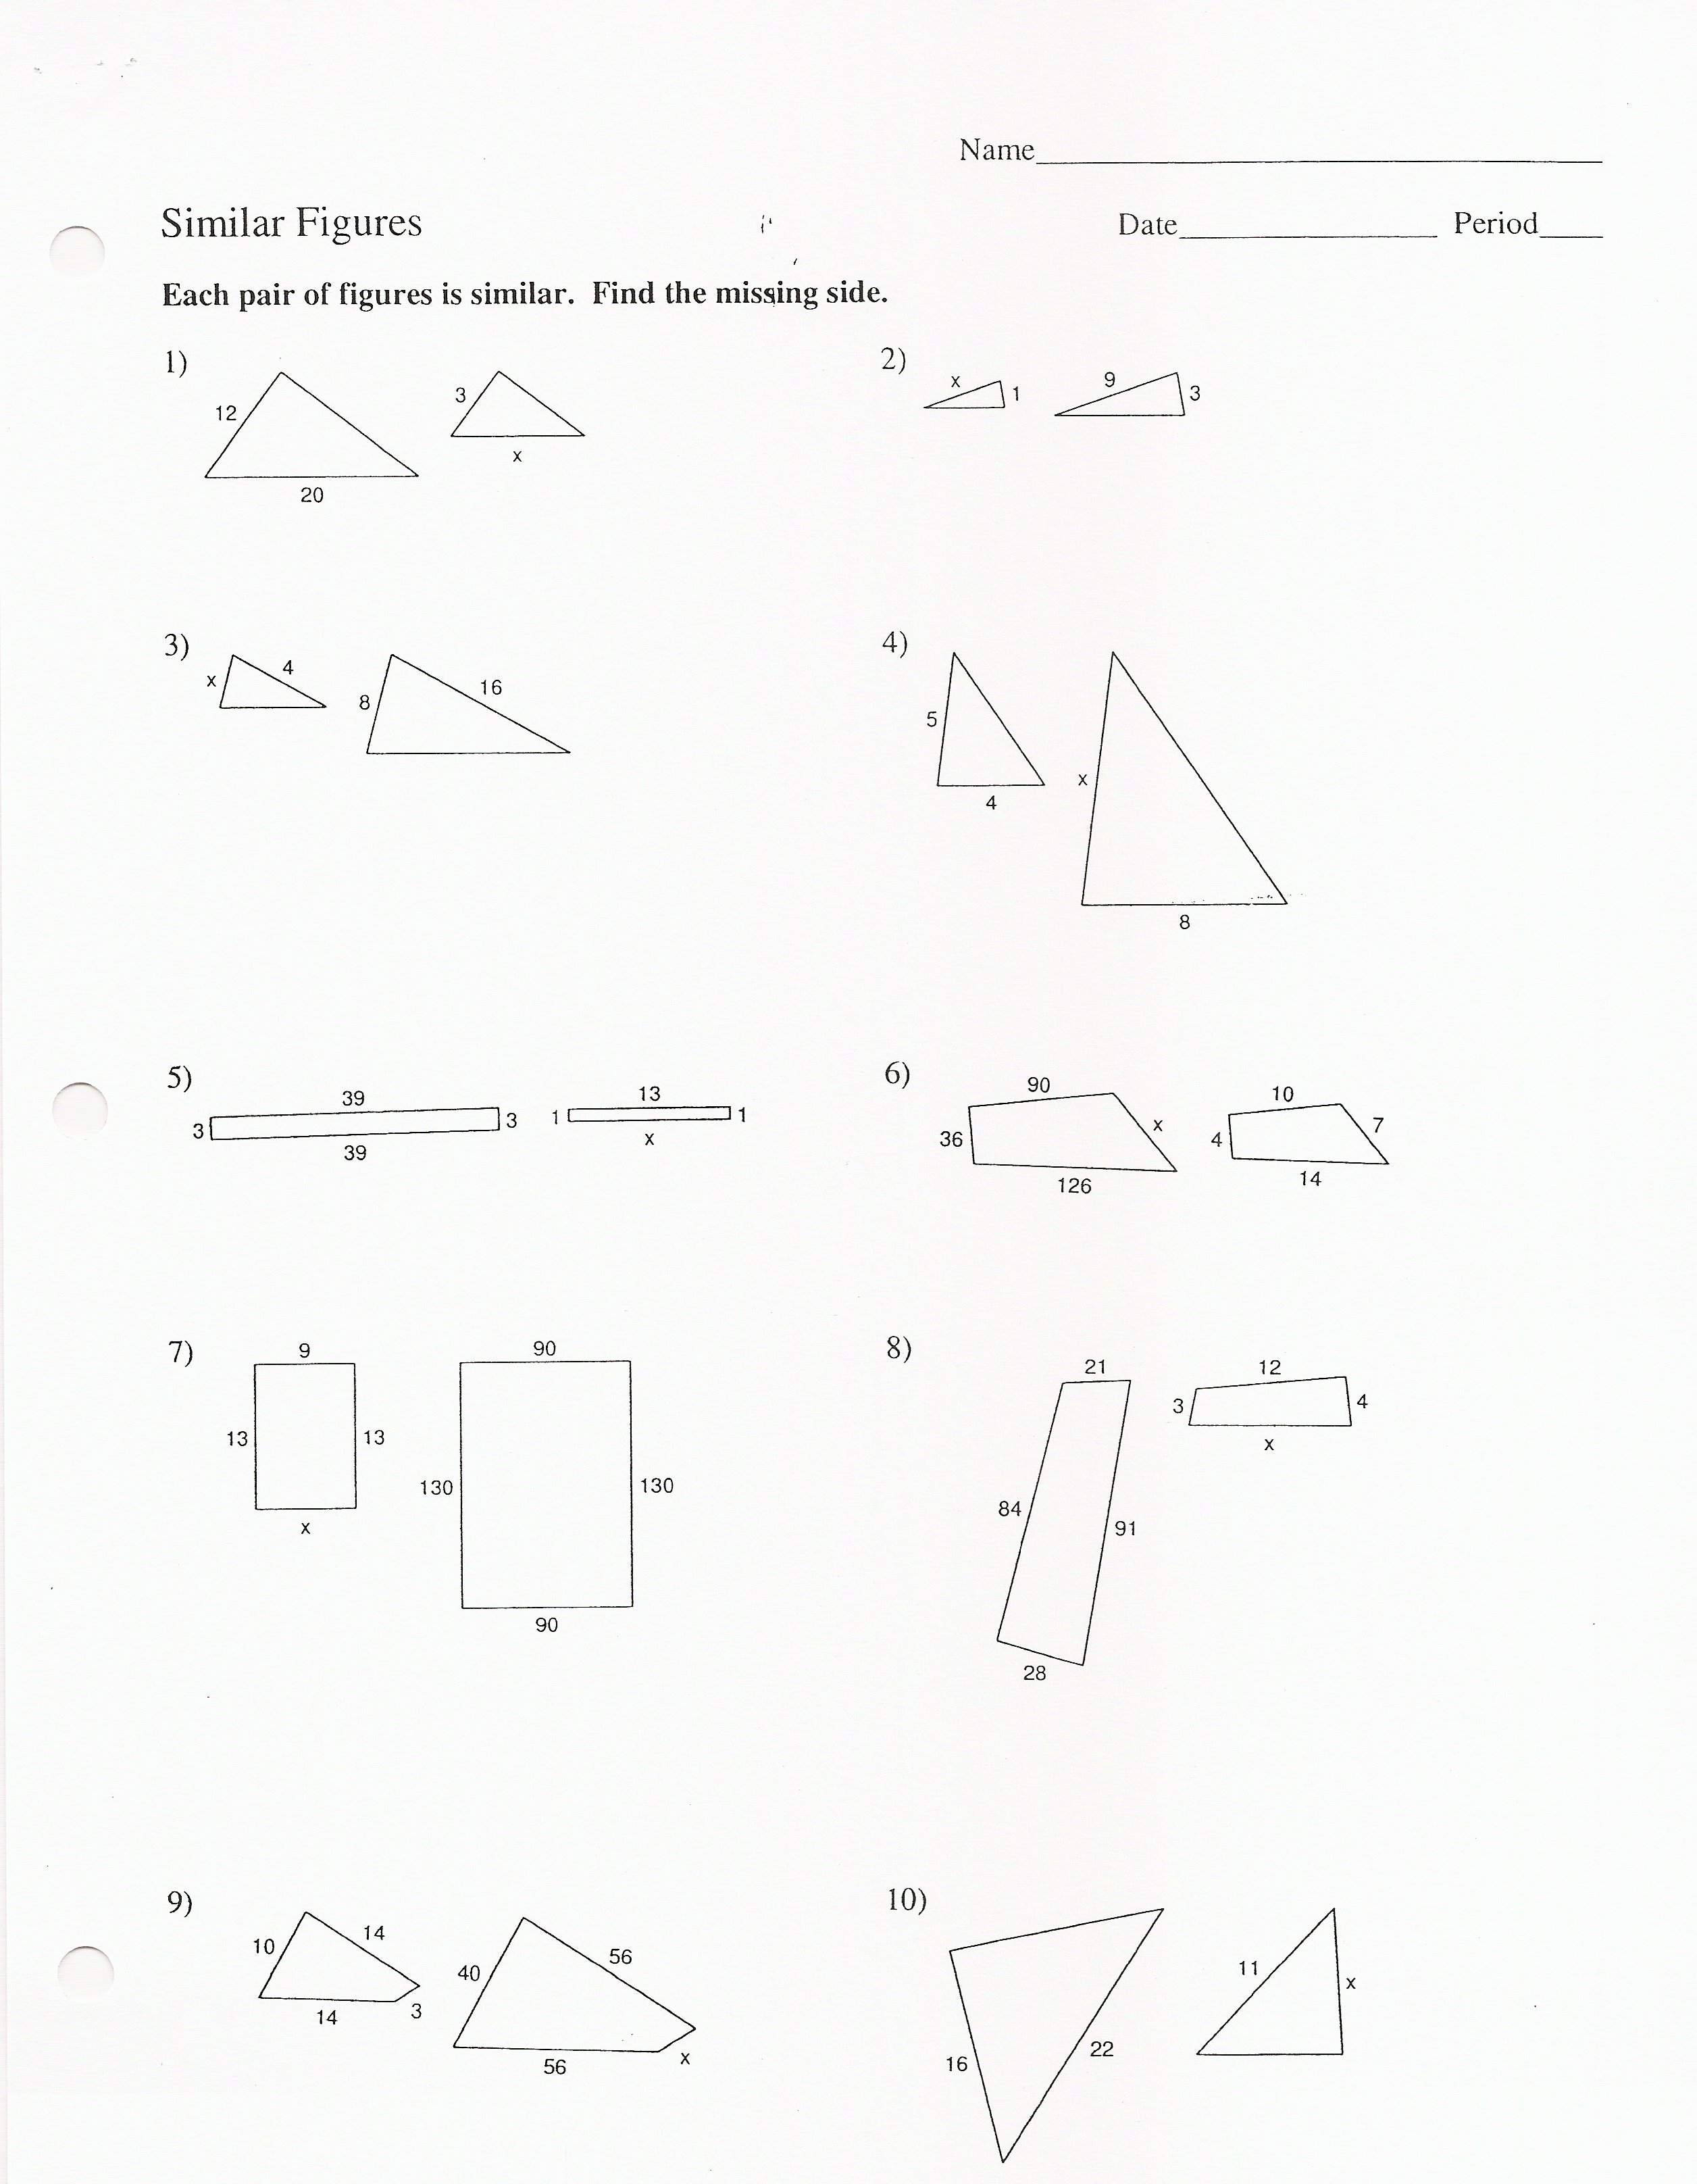 Similar Figures Worksheets 8th Grade